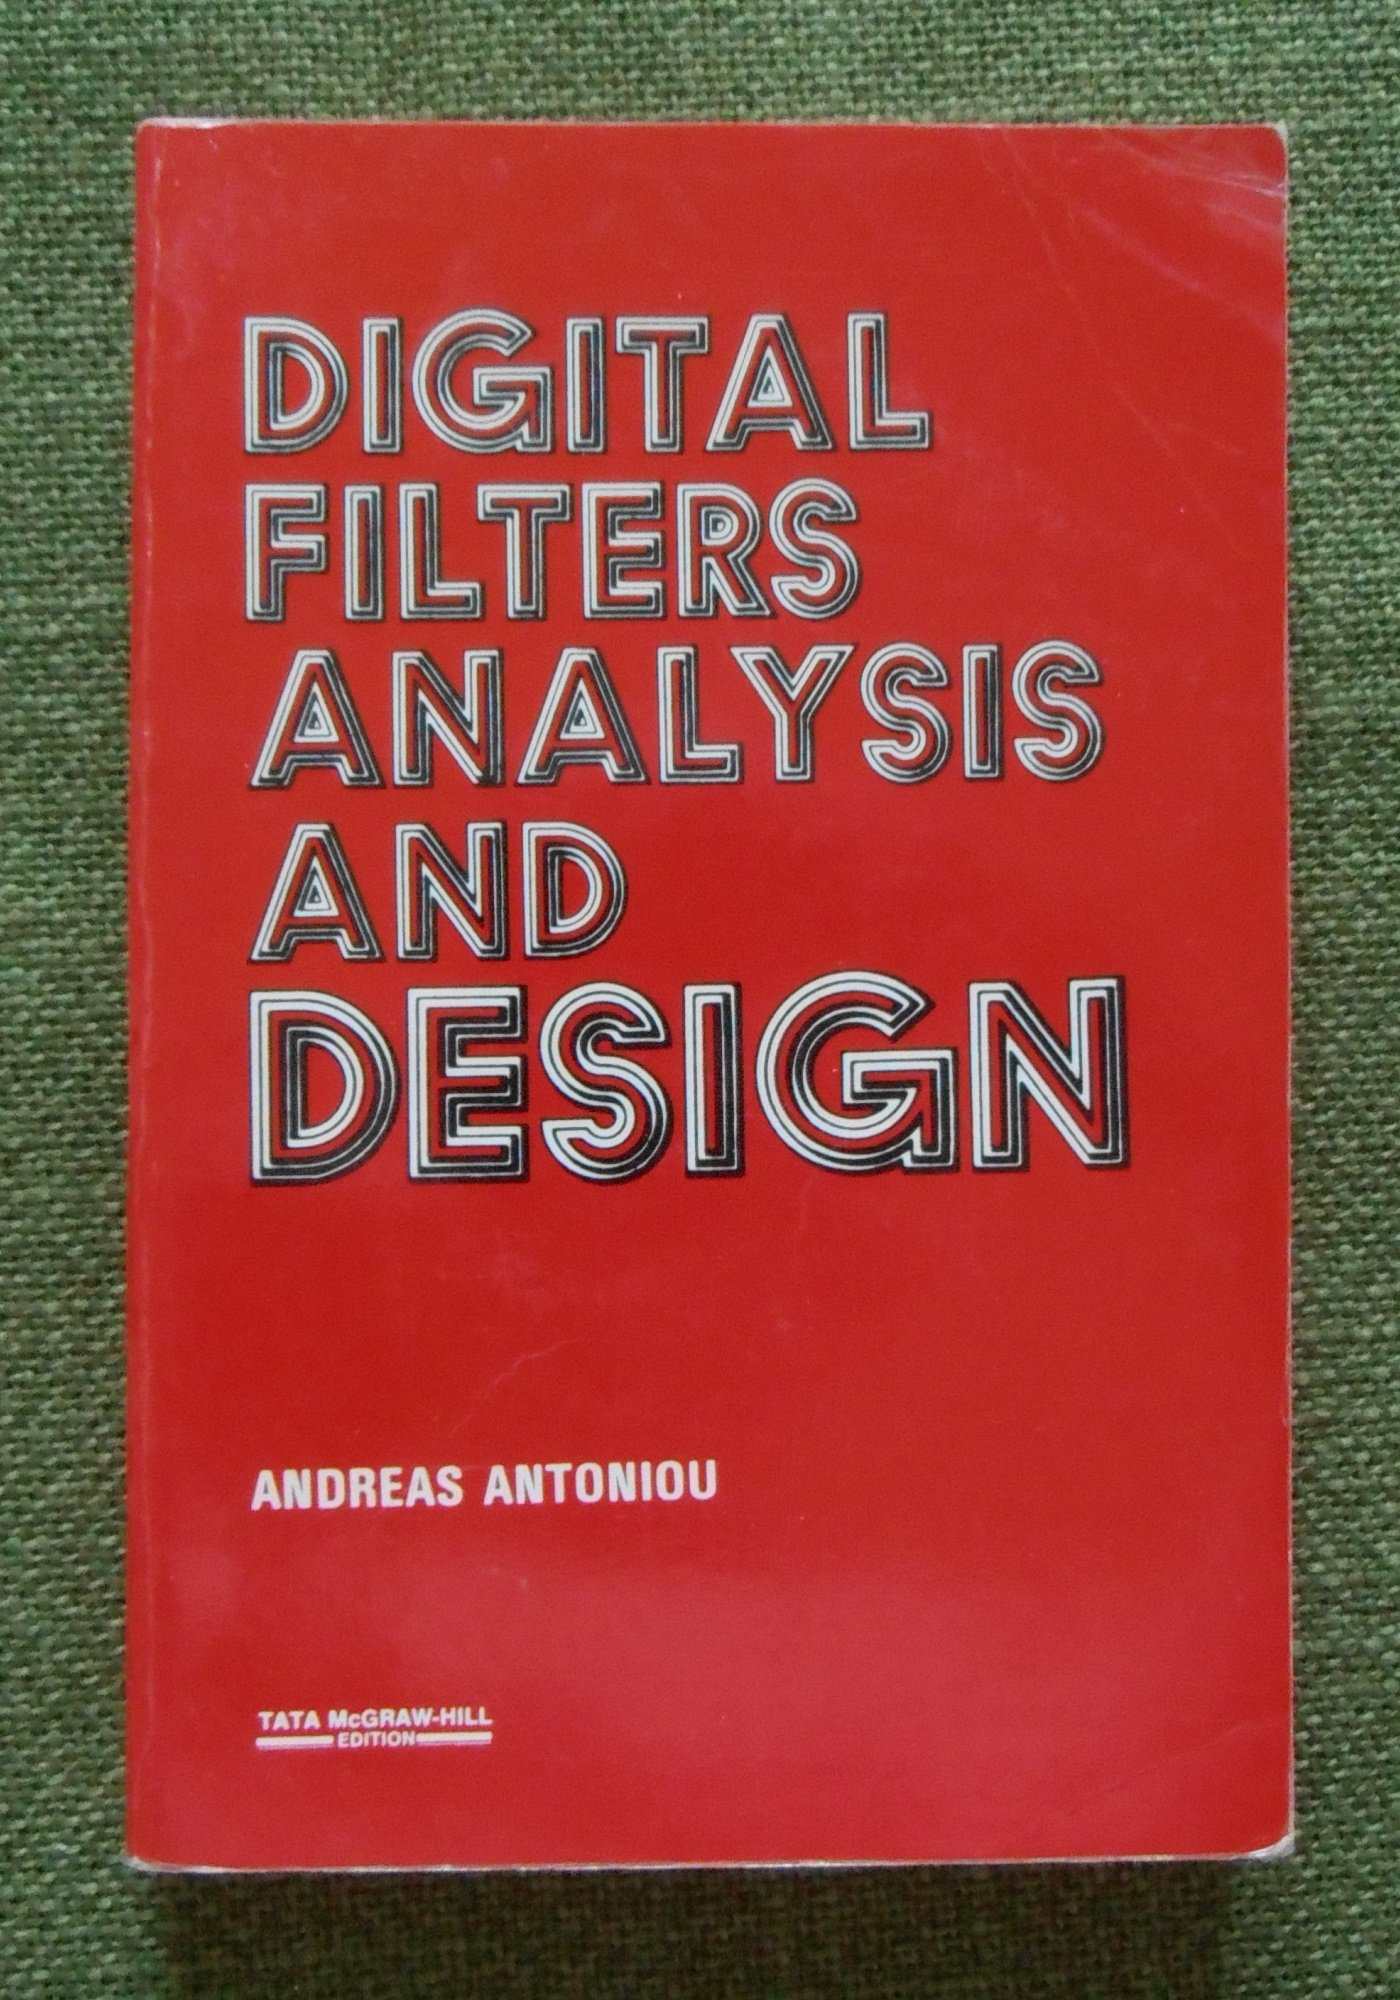 Digital filters analisys and design